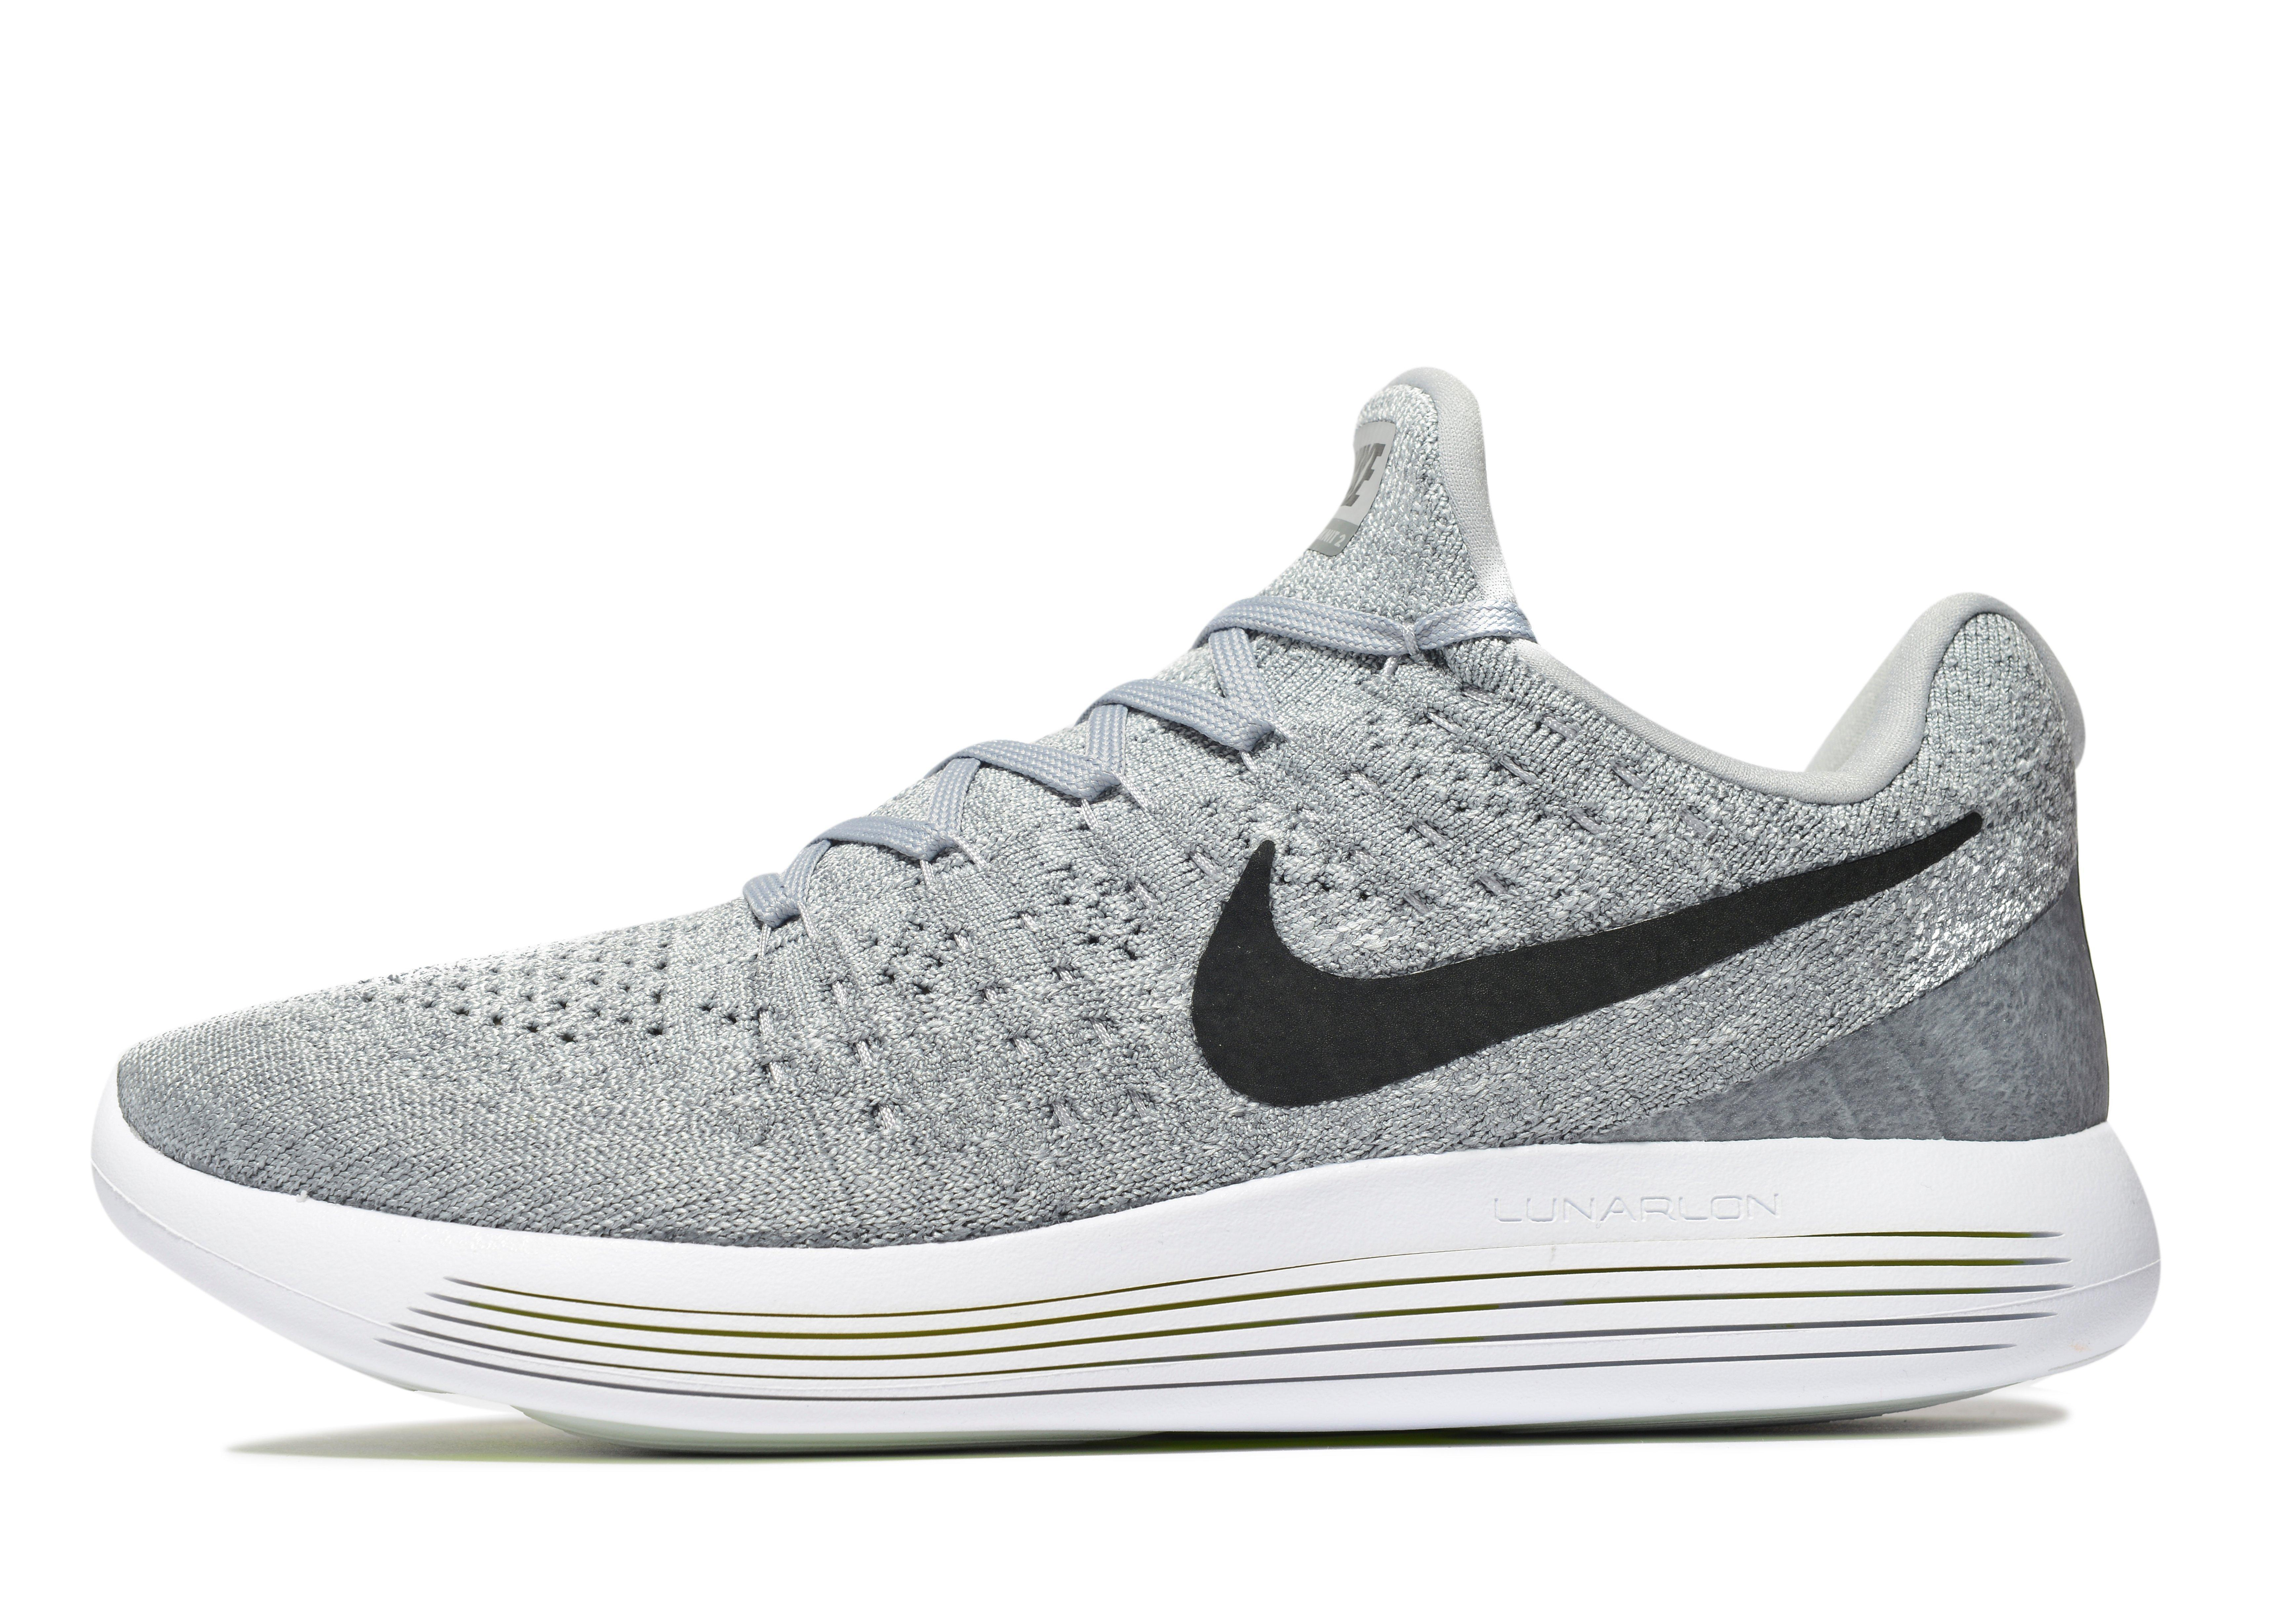 b51bec18760 Gallery. Previously sold at  JD Sports · Women s Nike Flyknit ...